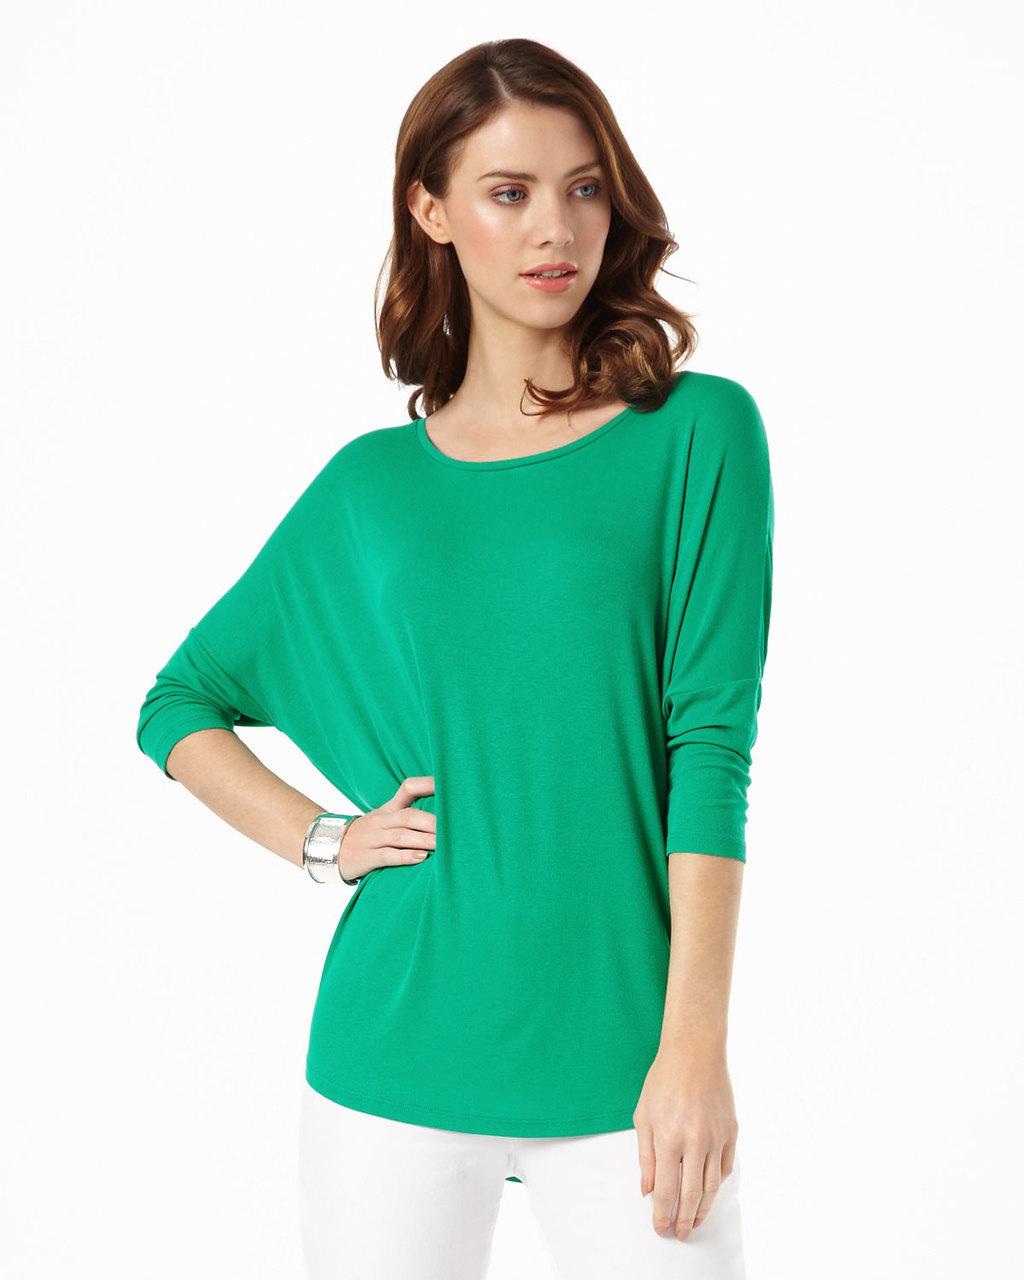 Catrina Top - neckline: round neck; sleeve style: dolman/batwing; pattern: plain; length: below the bottom; style: t-shirt; predominant colour: emerald green; occasions: casual, creative work; fibres: viscose/rayon - stretch; fit: loose; sleeve length: 3/4 length; pattern type: fabric; texture group: jersey - stretchy/drapey; season: s/s 2016; wardrobe: highlight